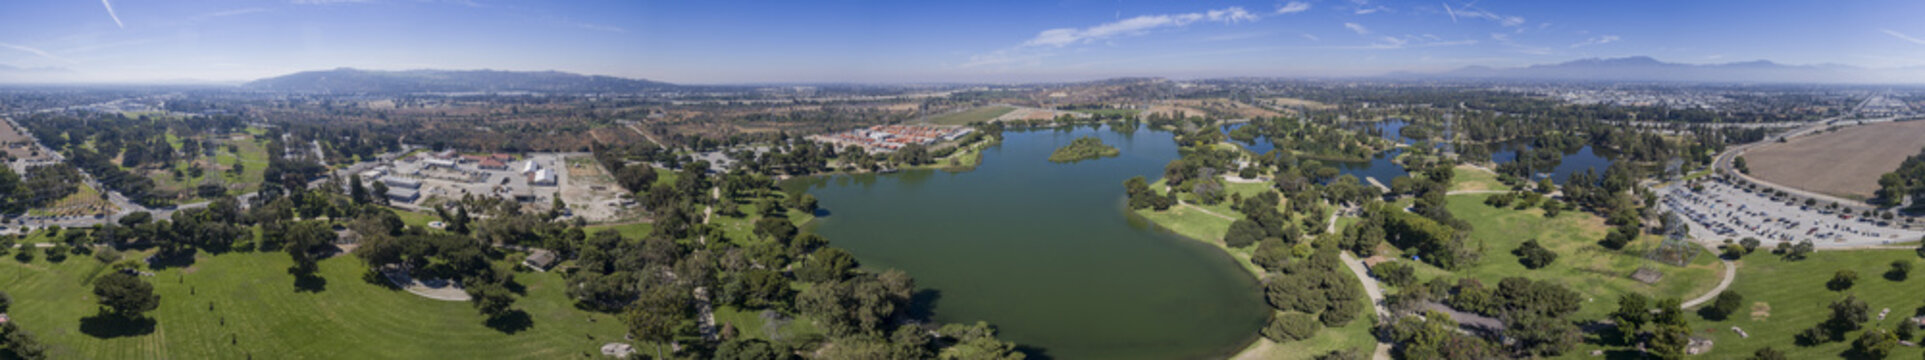 Aerial view of Whittier Narrows Recreation